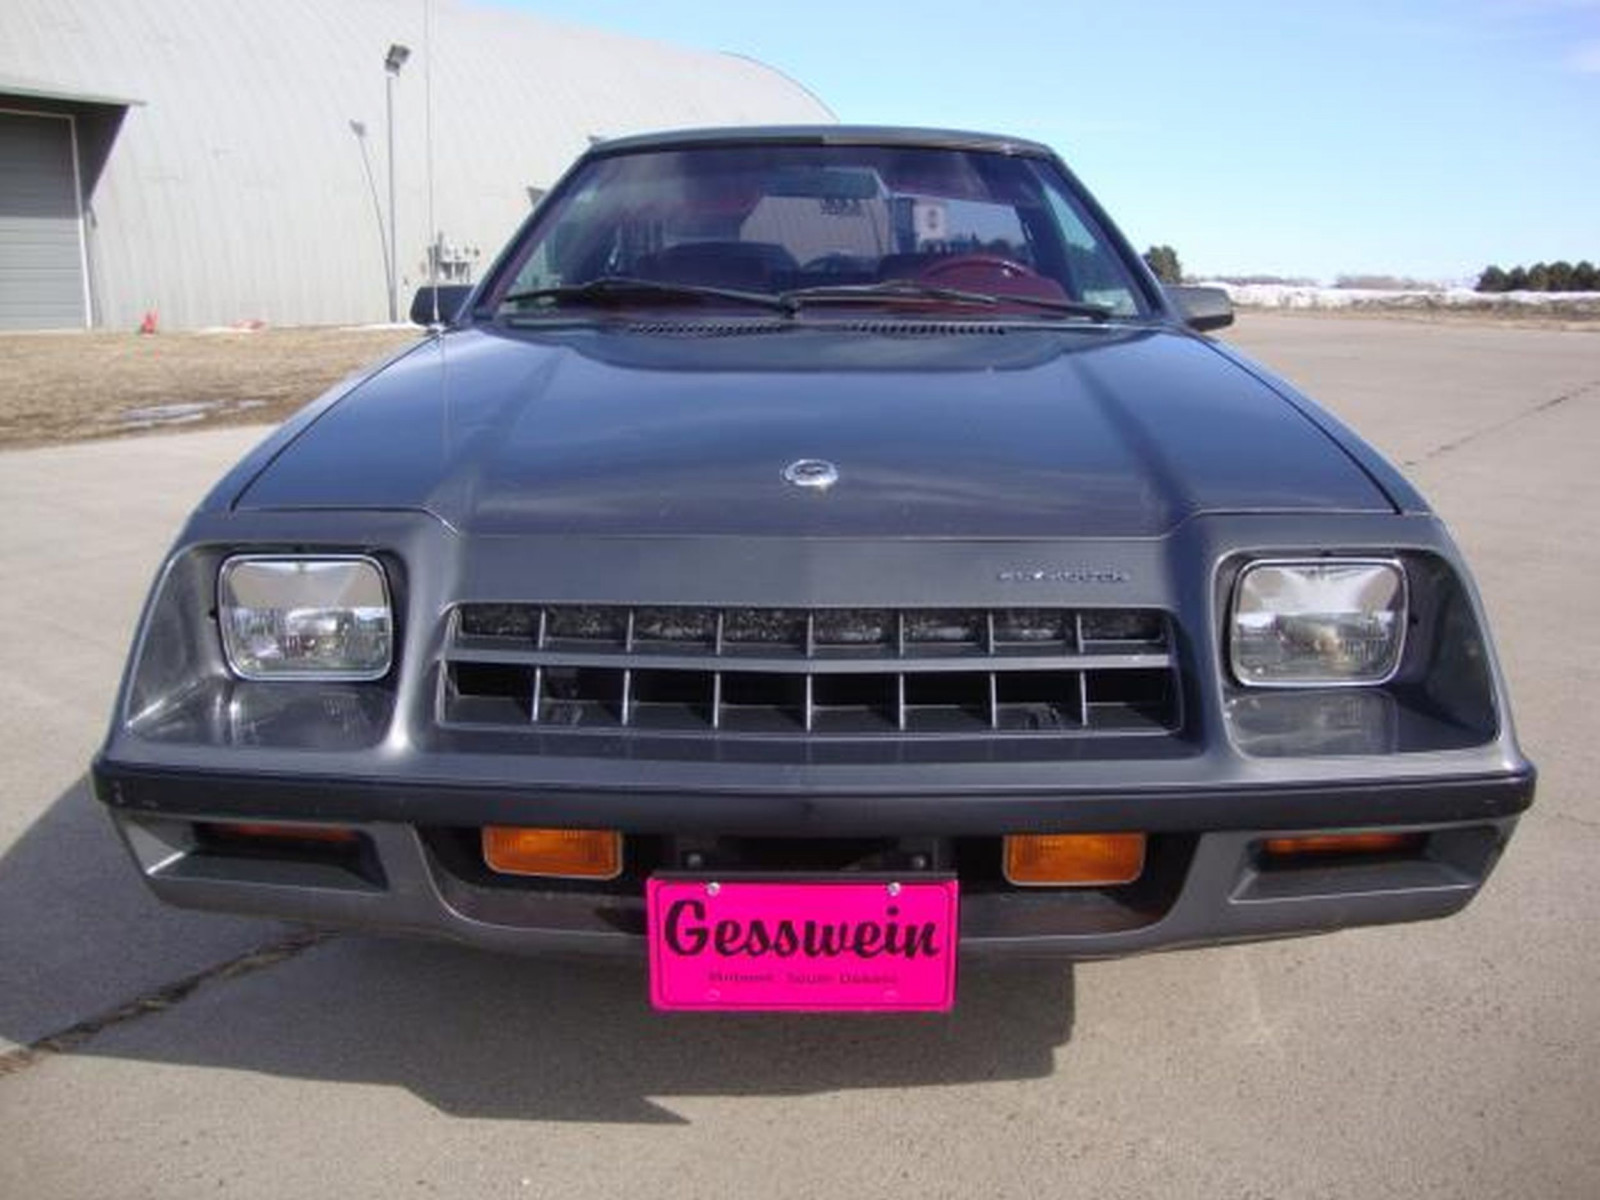 1983 Plymouth Scamp Pickup - Image 13